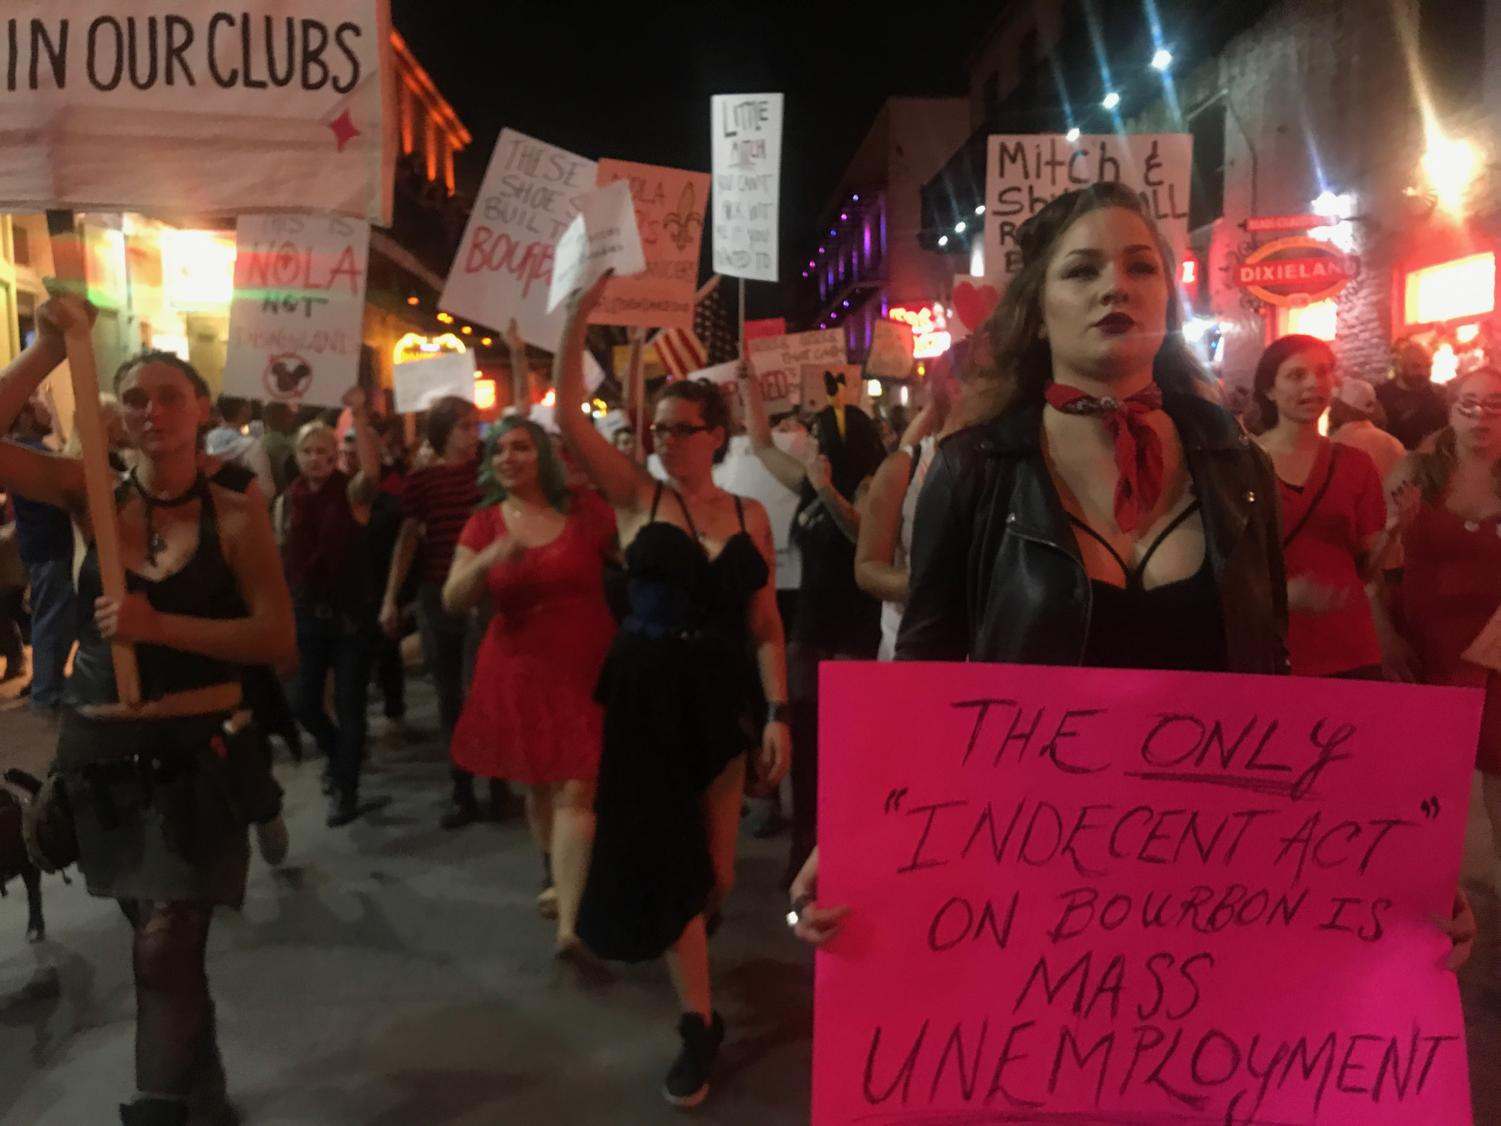 Club workers march down Bourbon Street Feb. 1, 2018, in protest against recent NOPD raids that they say caused massive unemployment Photo credit: Mairéad Siobhán